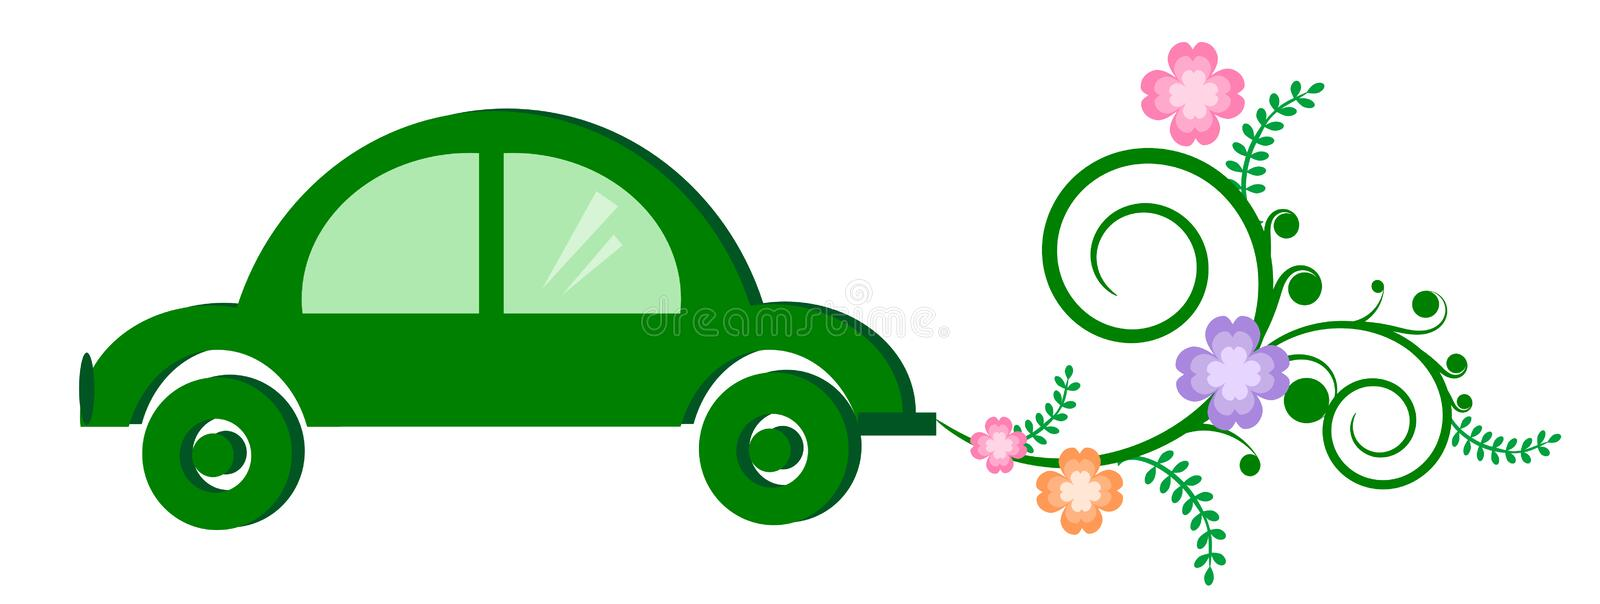 Véhicule vert d'ECO illustration stock